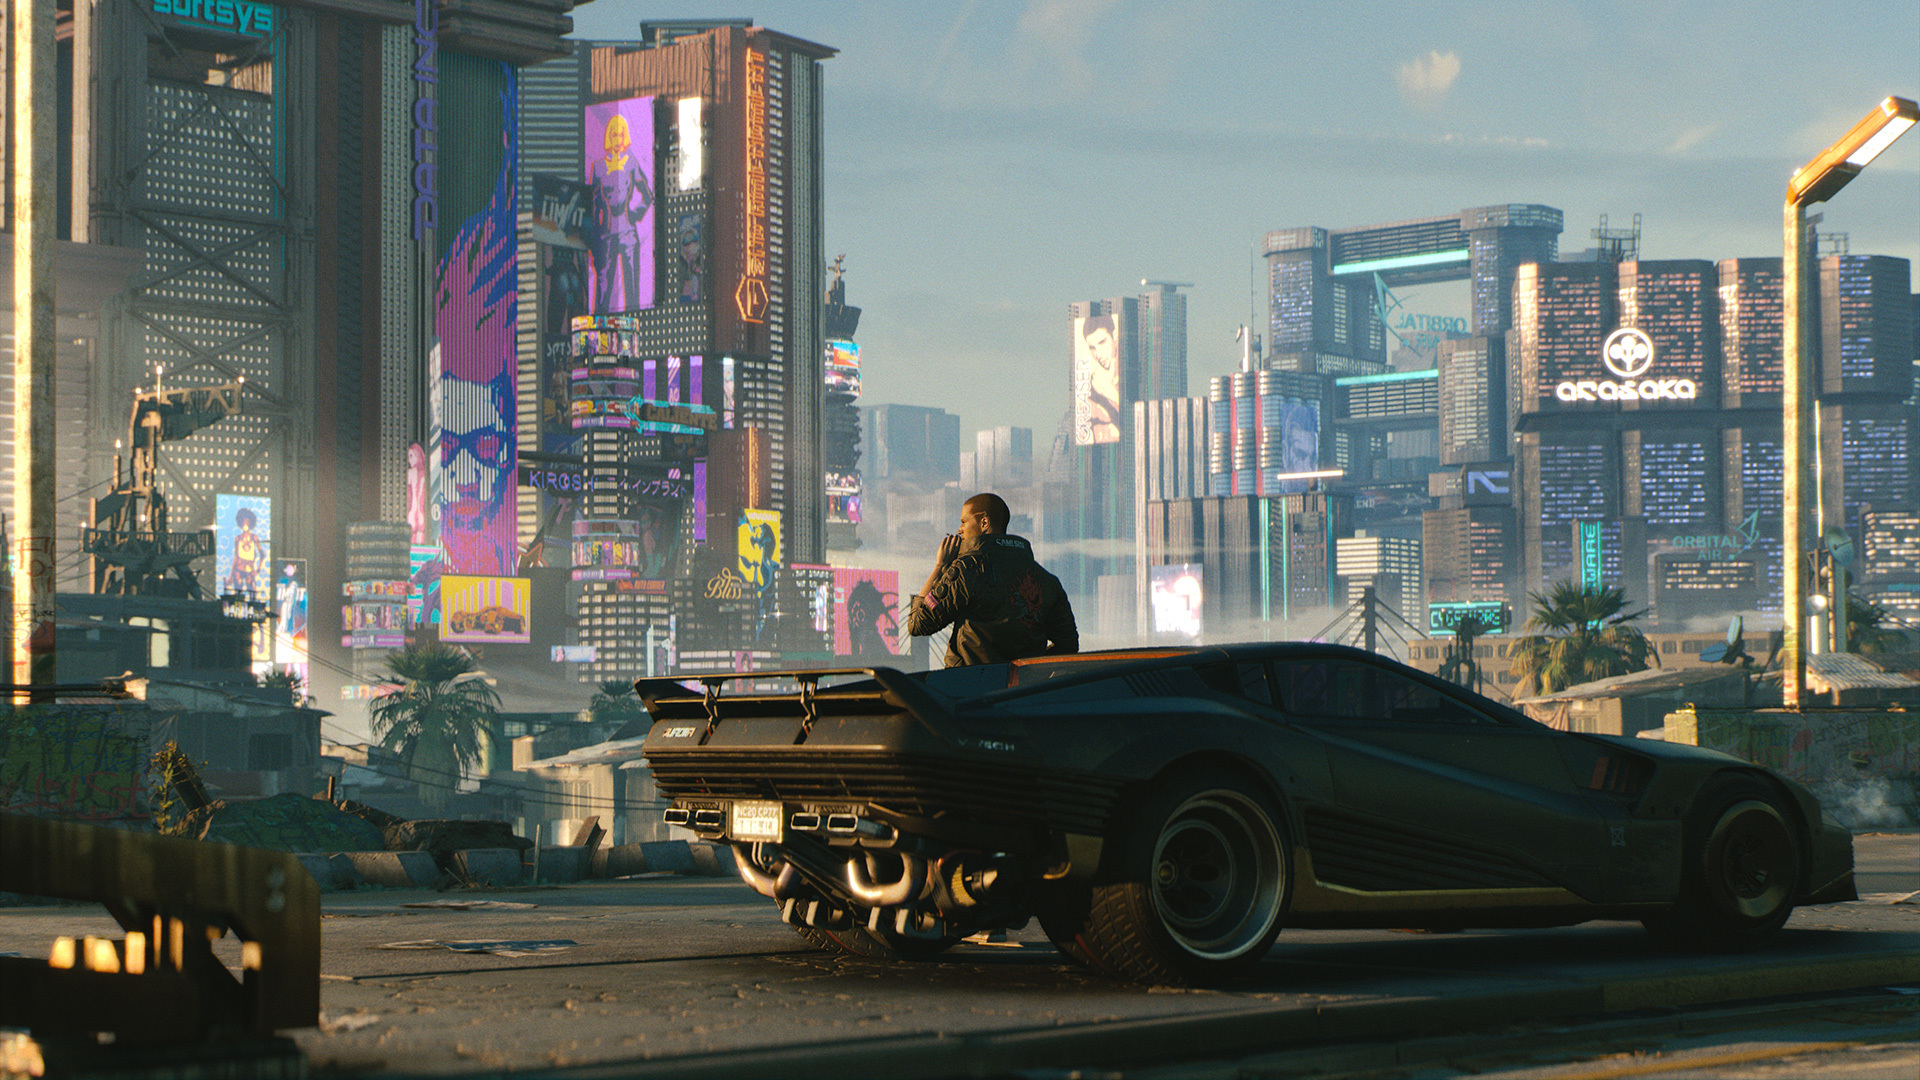 I saw an hour of Cyberpunk 2077 today. It s easy to do preorder